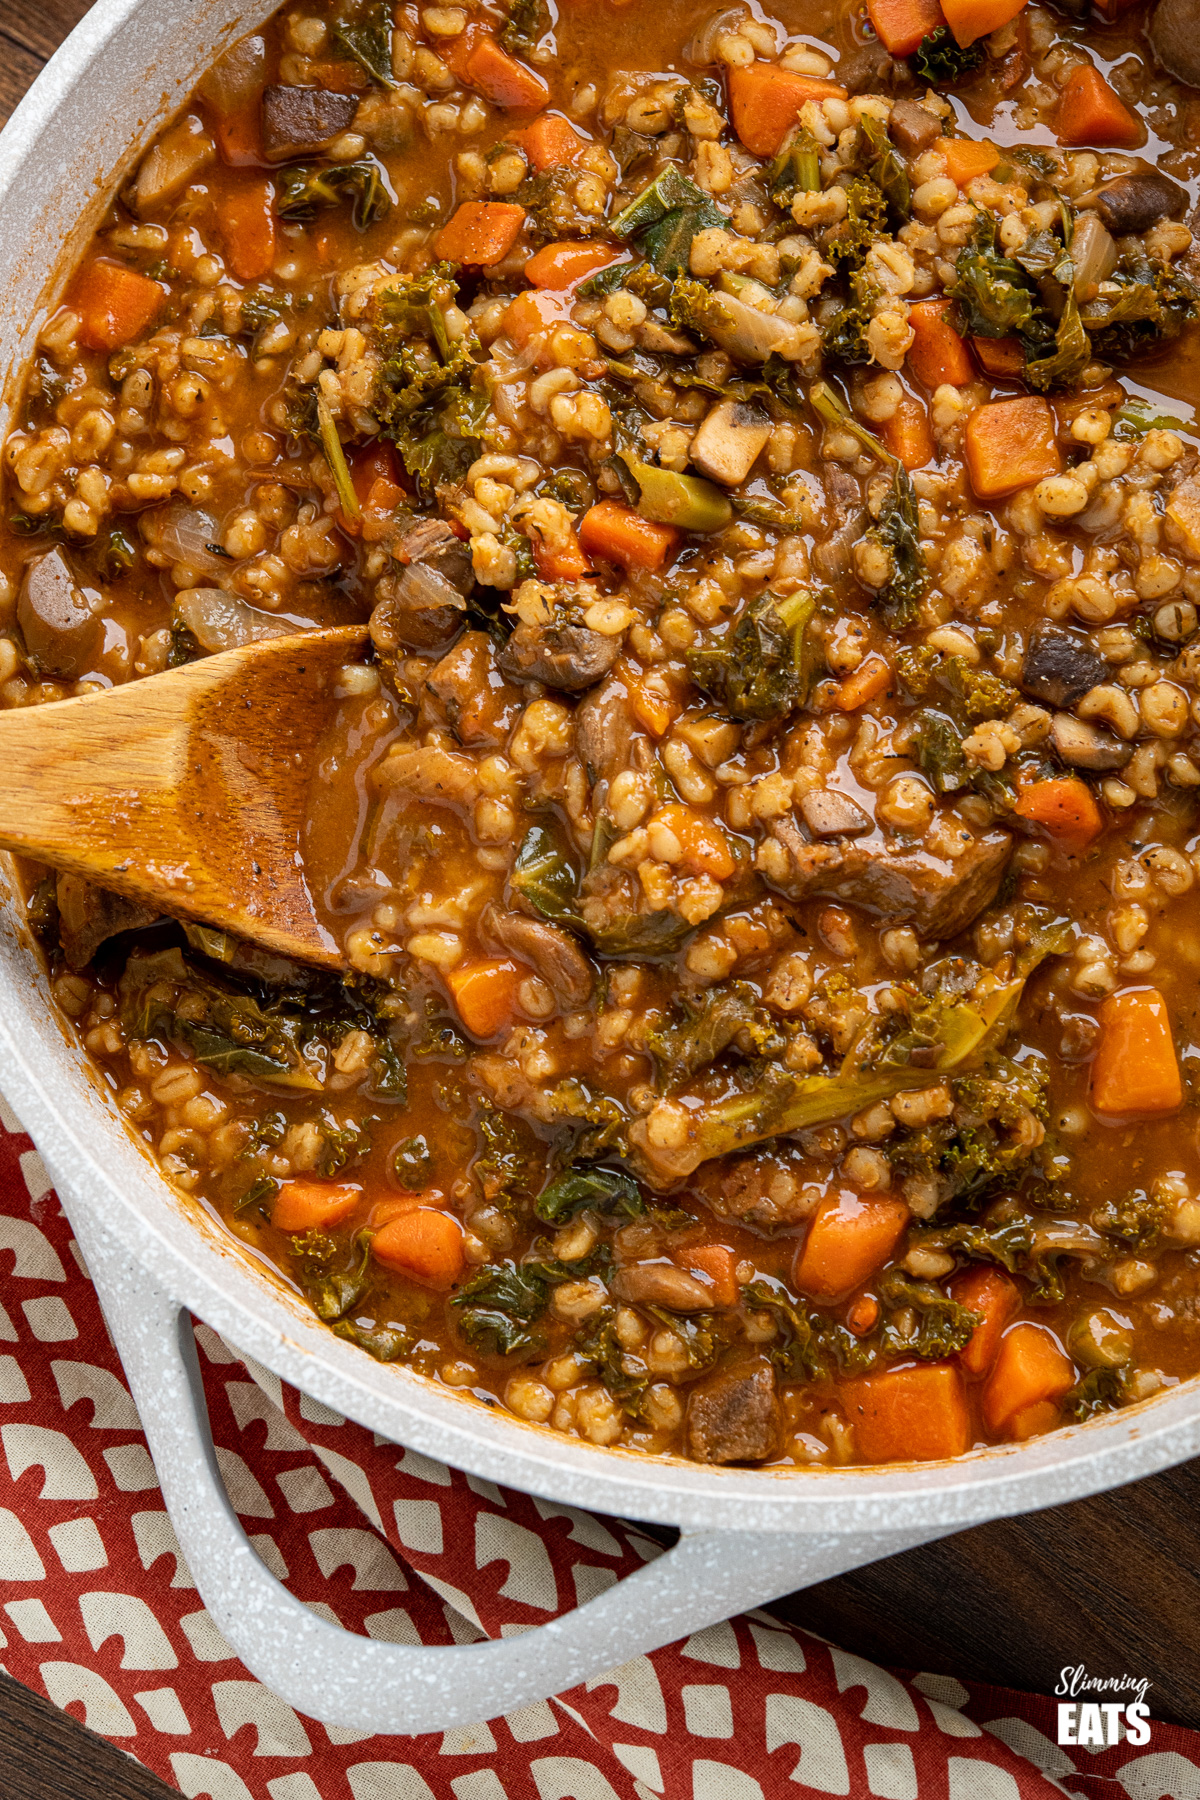 close up of Beef and barley stew in pot with wooden spoon